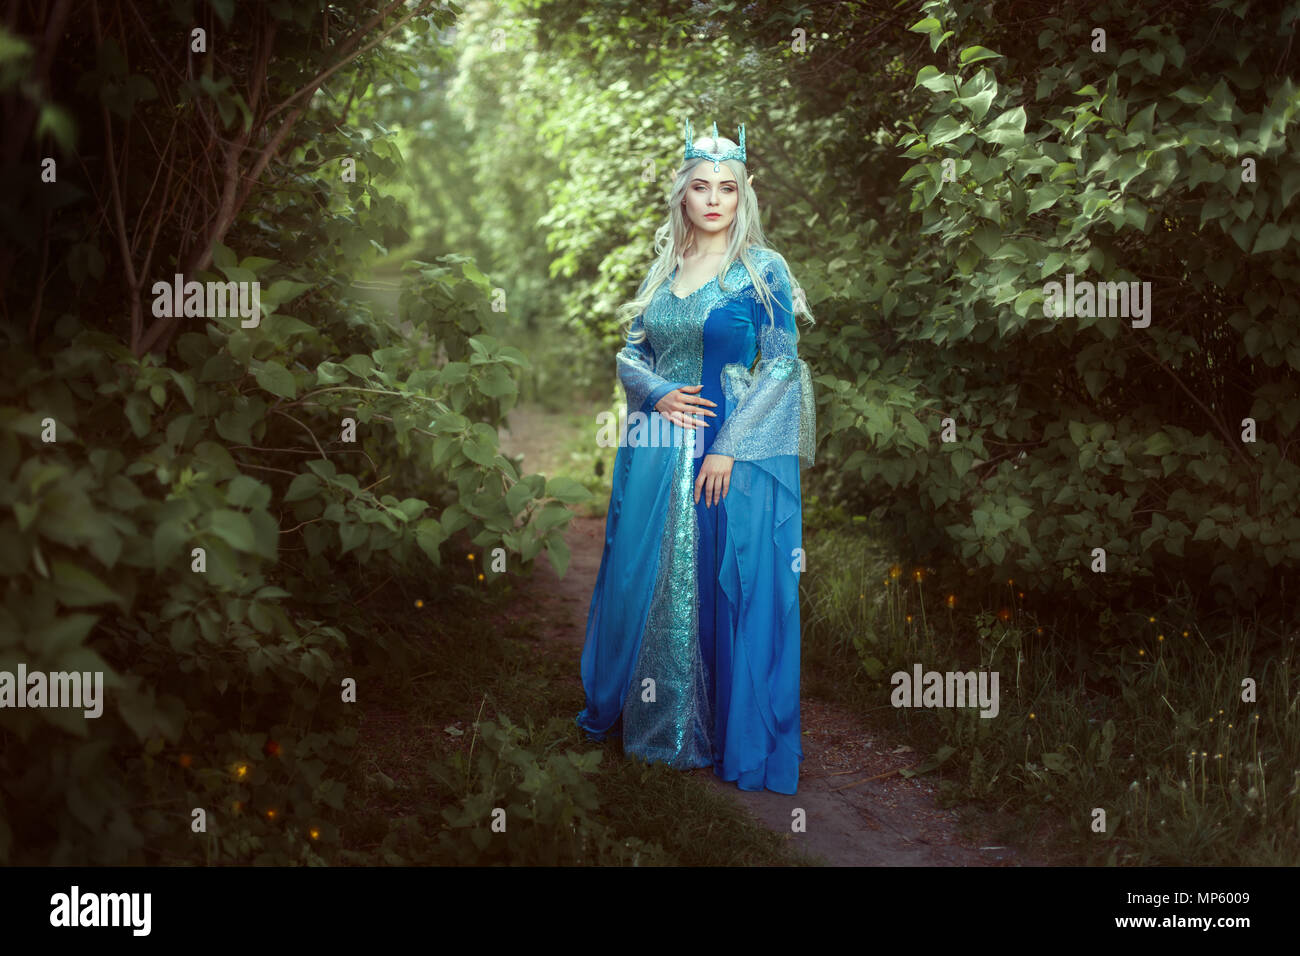 Beautiful elf woman in a blue dress standing in the fairy forest. - Stock Image